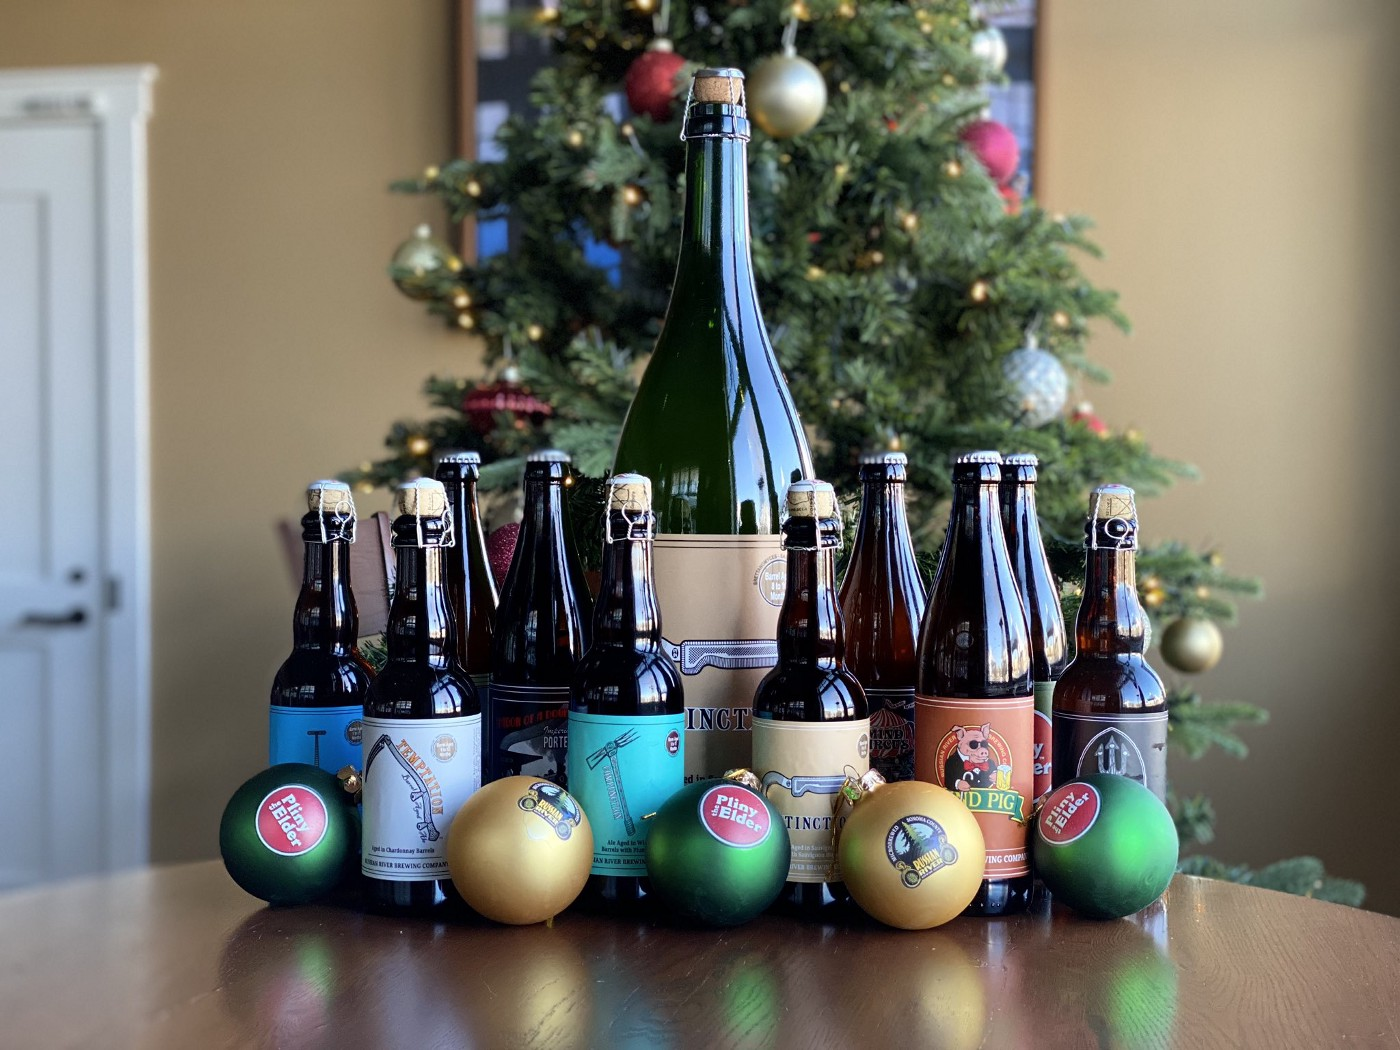 An assortment of small bottles of beer around a large one, all in front of a Christmas tree.